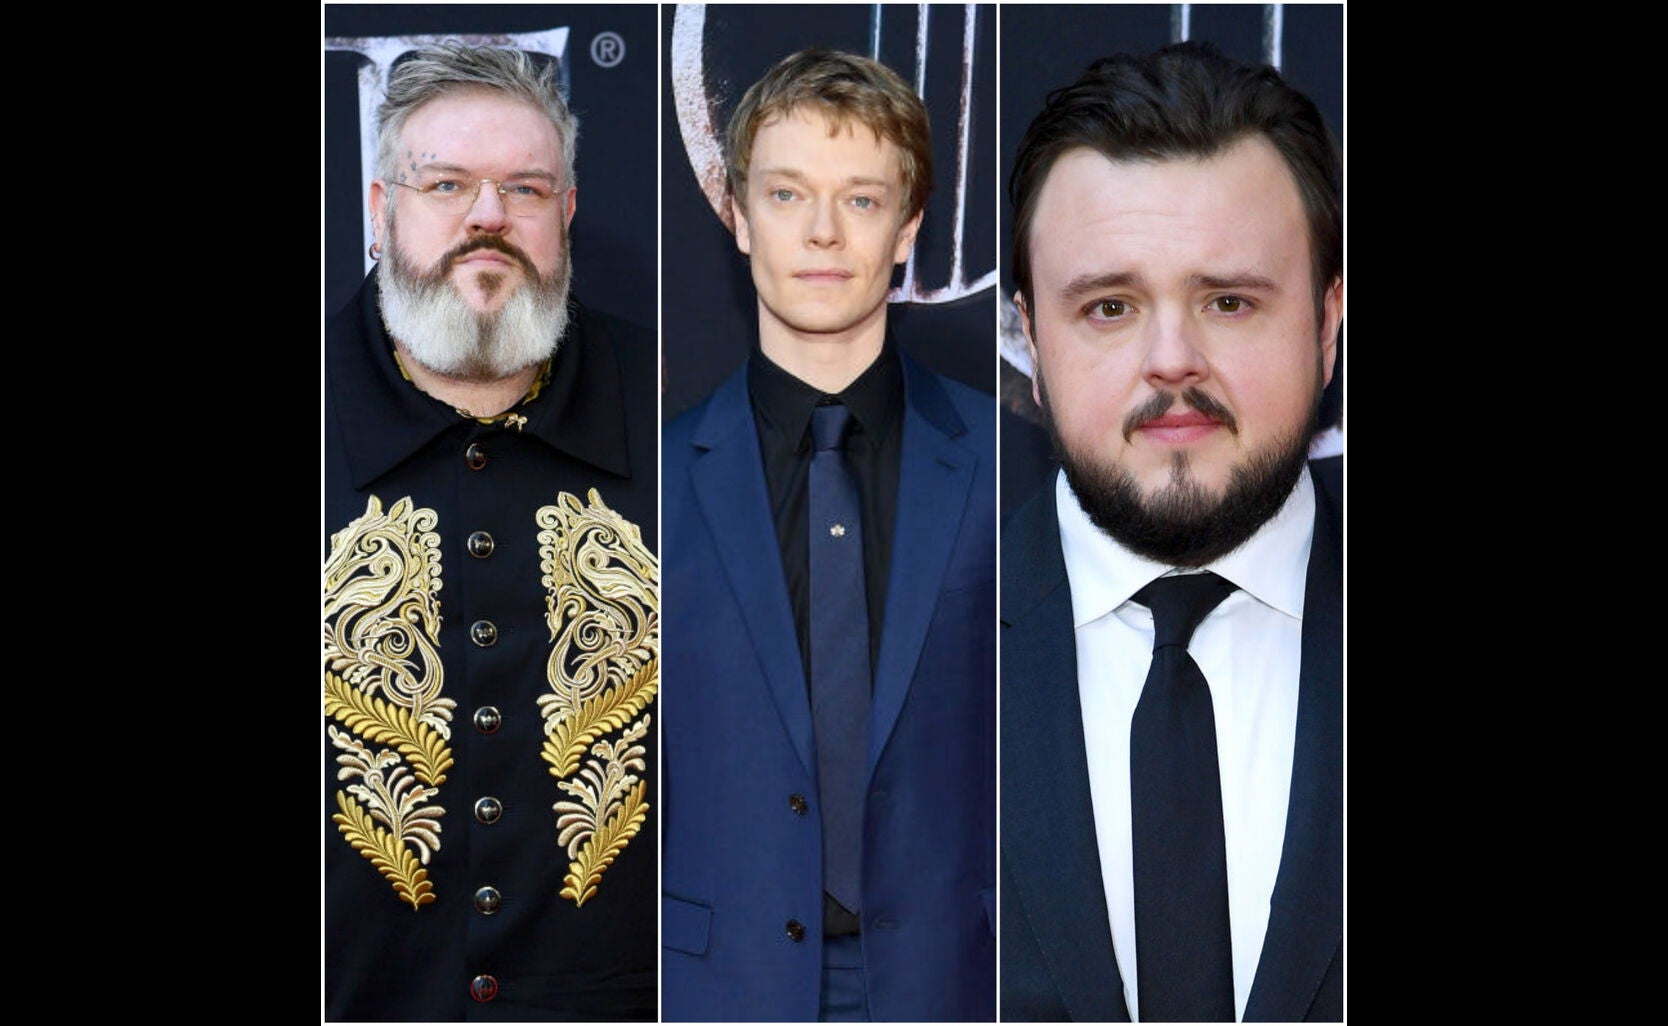 Kristian Nairn, Alfie Allen, John Bradley at the premiere of s8 of Game of Thrones